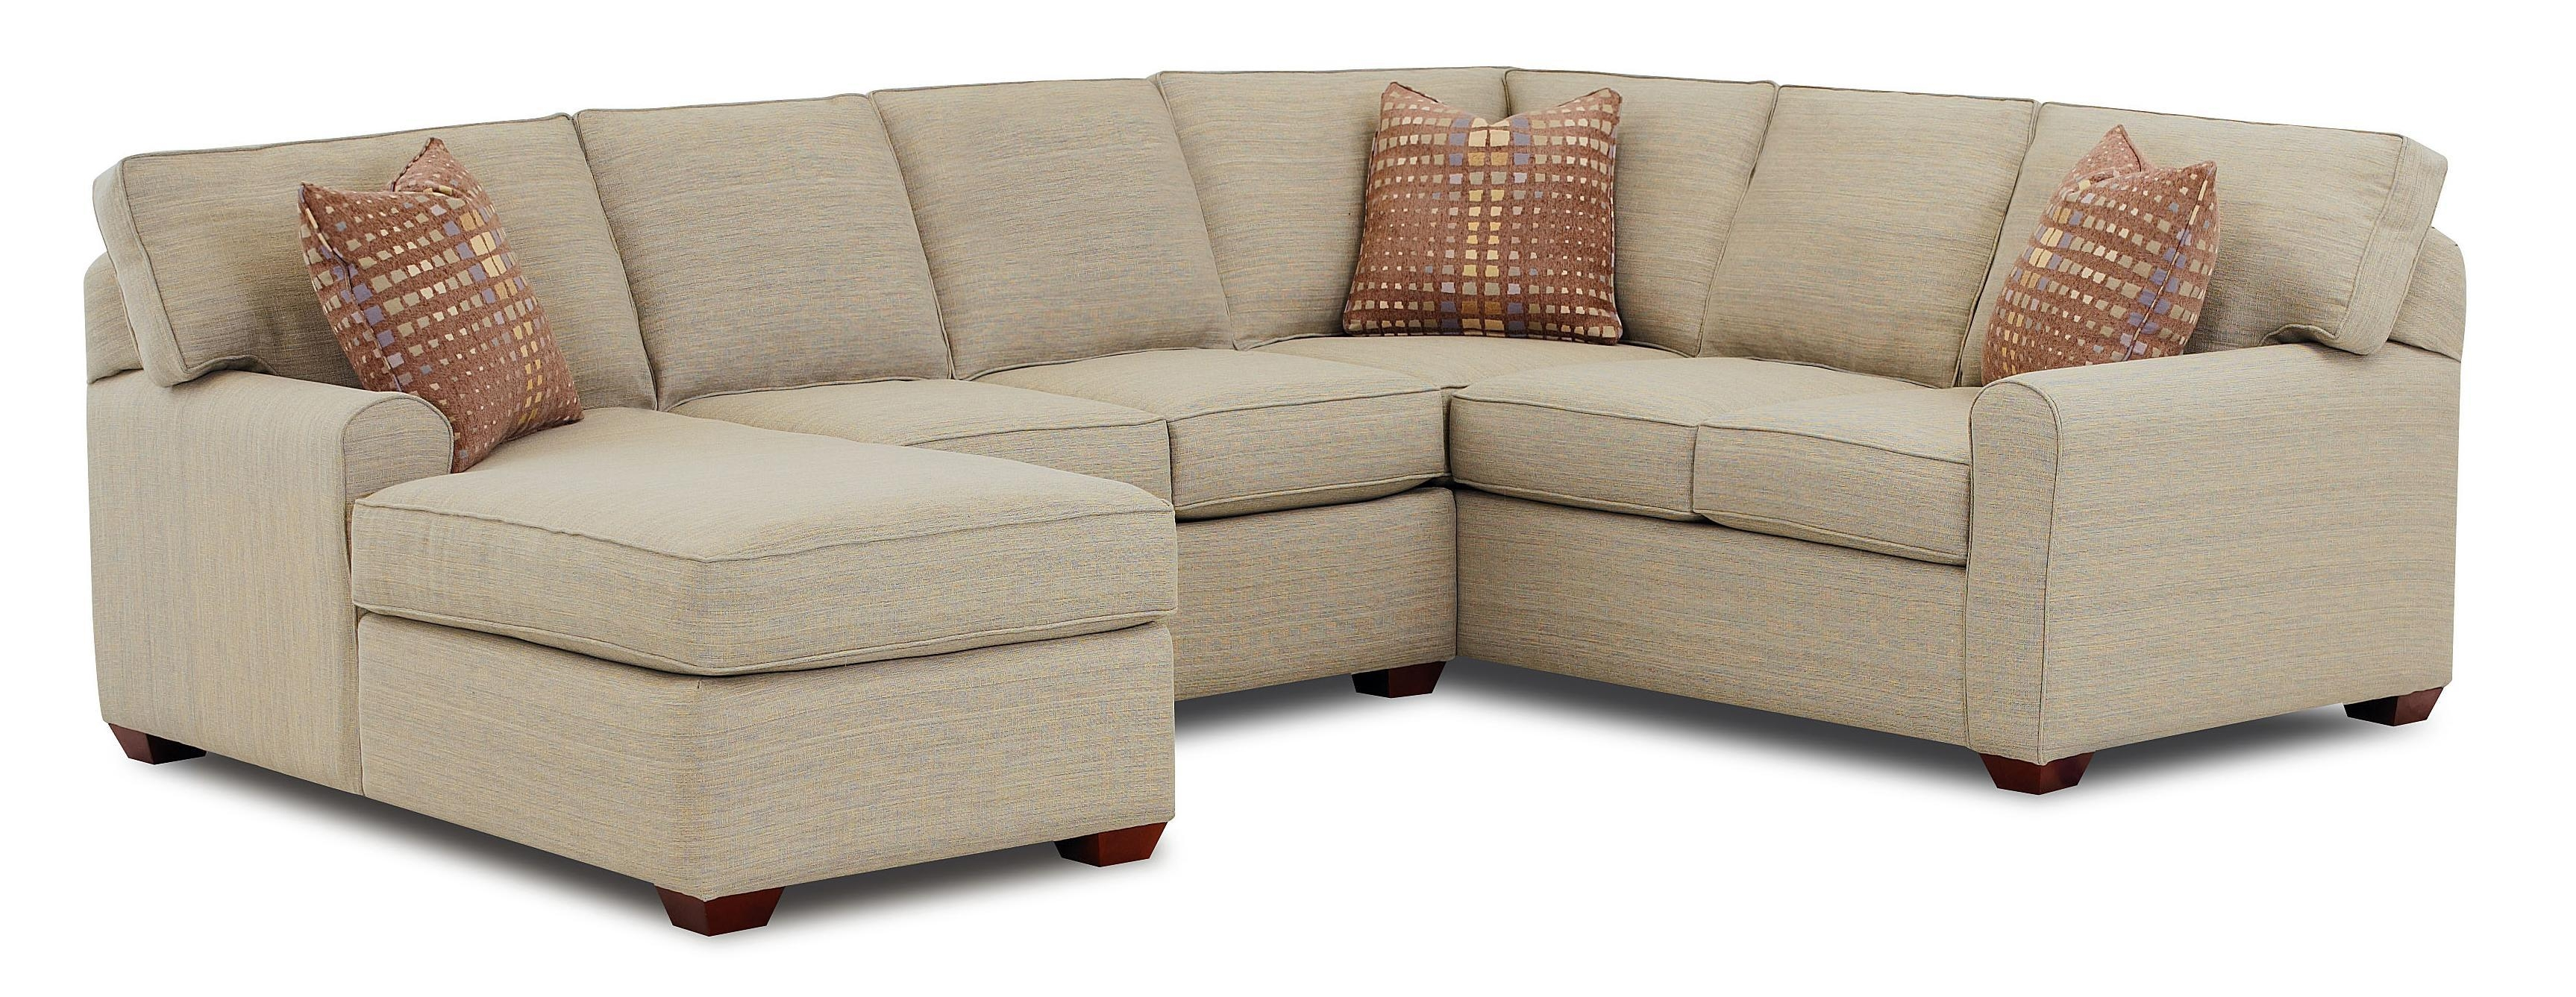 Sectional Sofa With Left Facing Chaise Loungeklaussner   Wolf Throughout Sofas With Chaise Longue (Image 12 of 20)